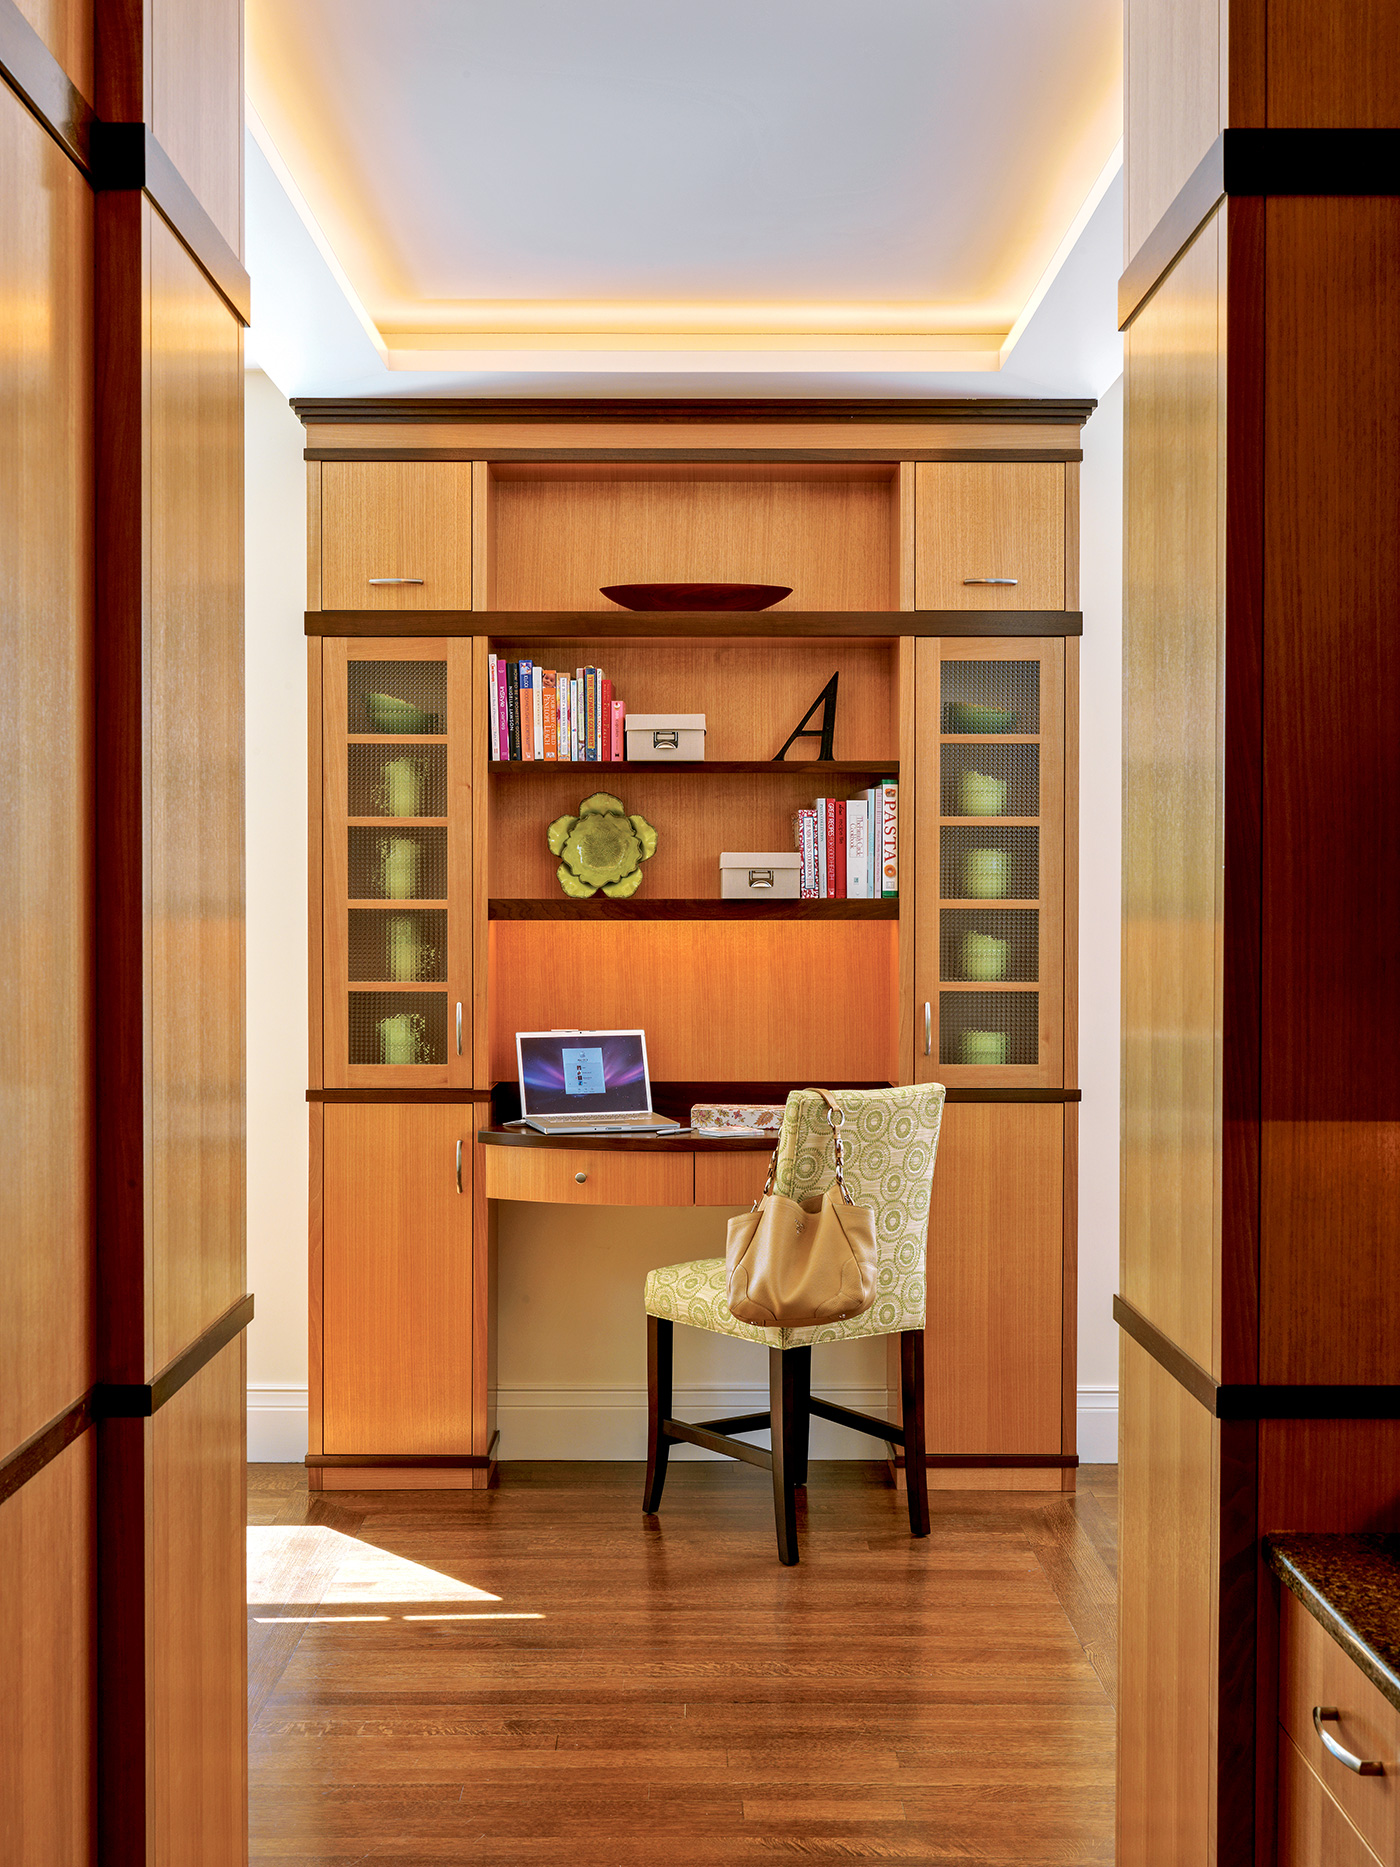 Home office space with custom millwork in a hallway design by Nicholaeff Architecture + Design